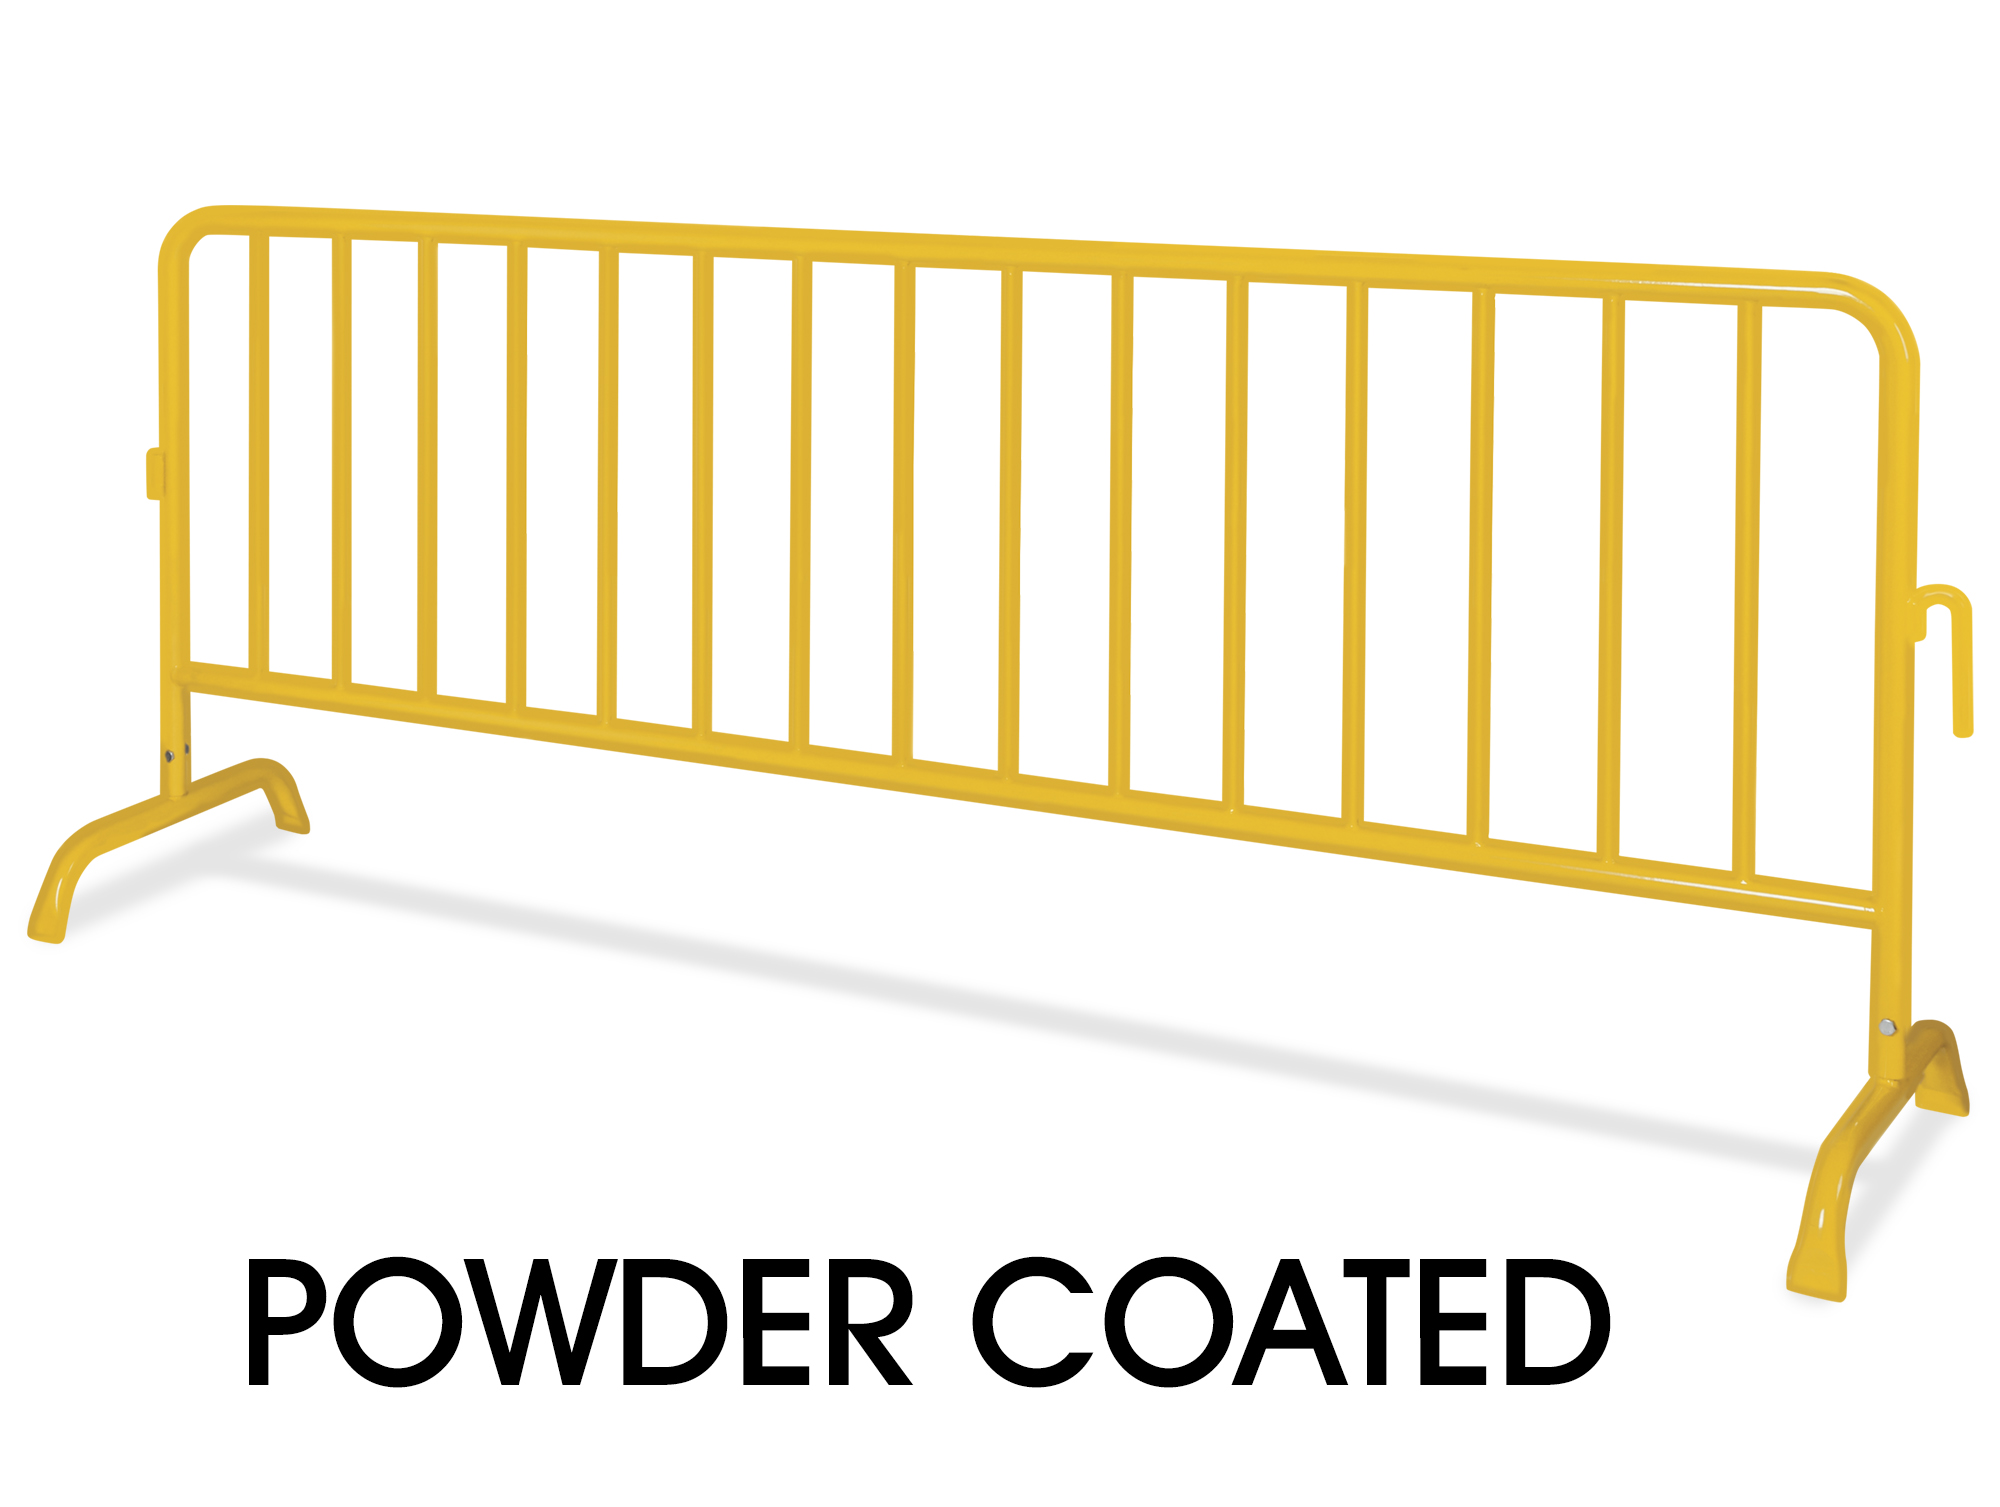 Powder Coated